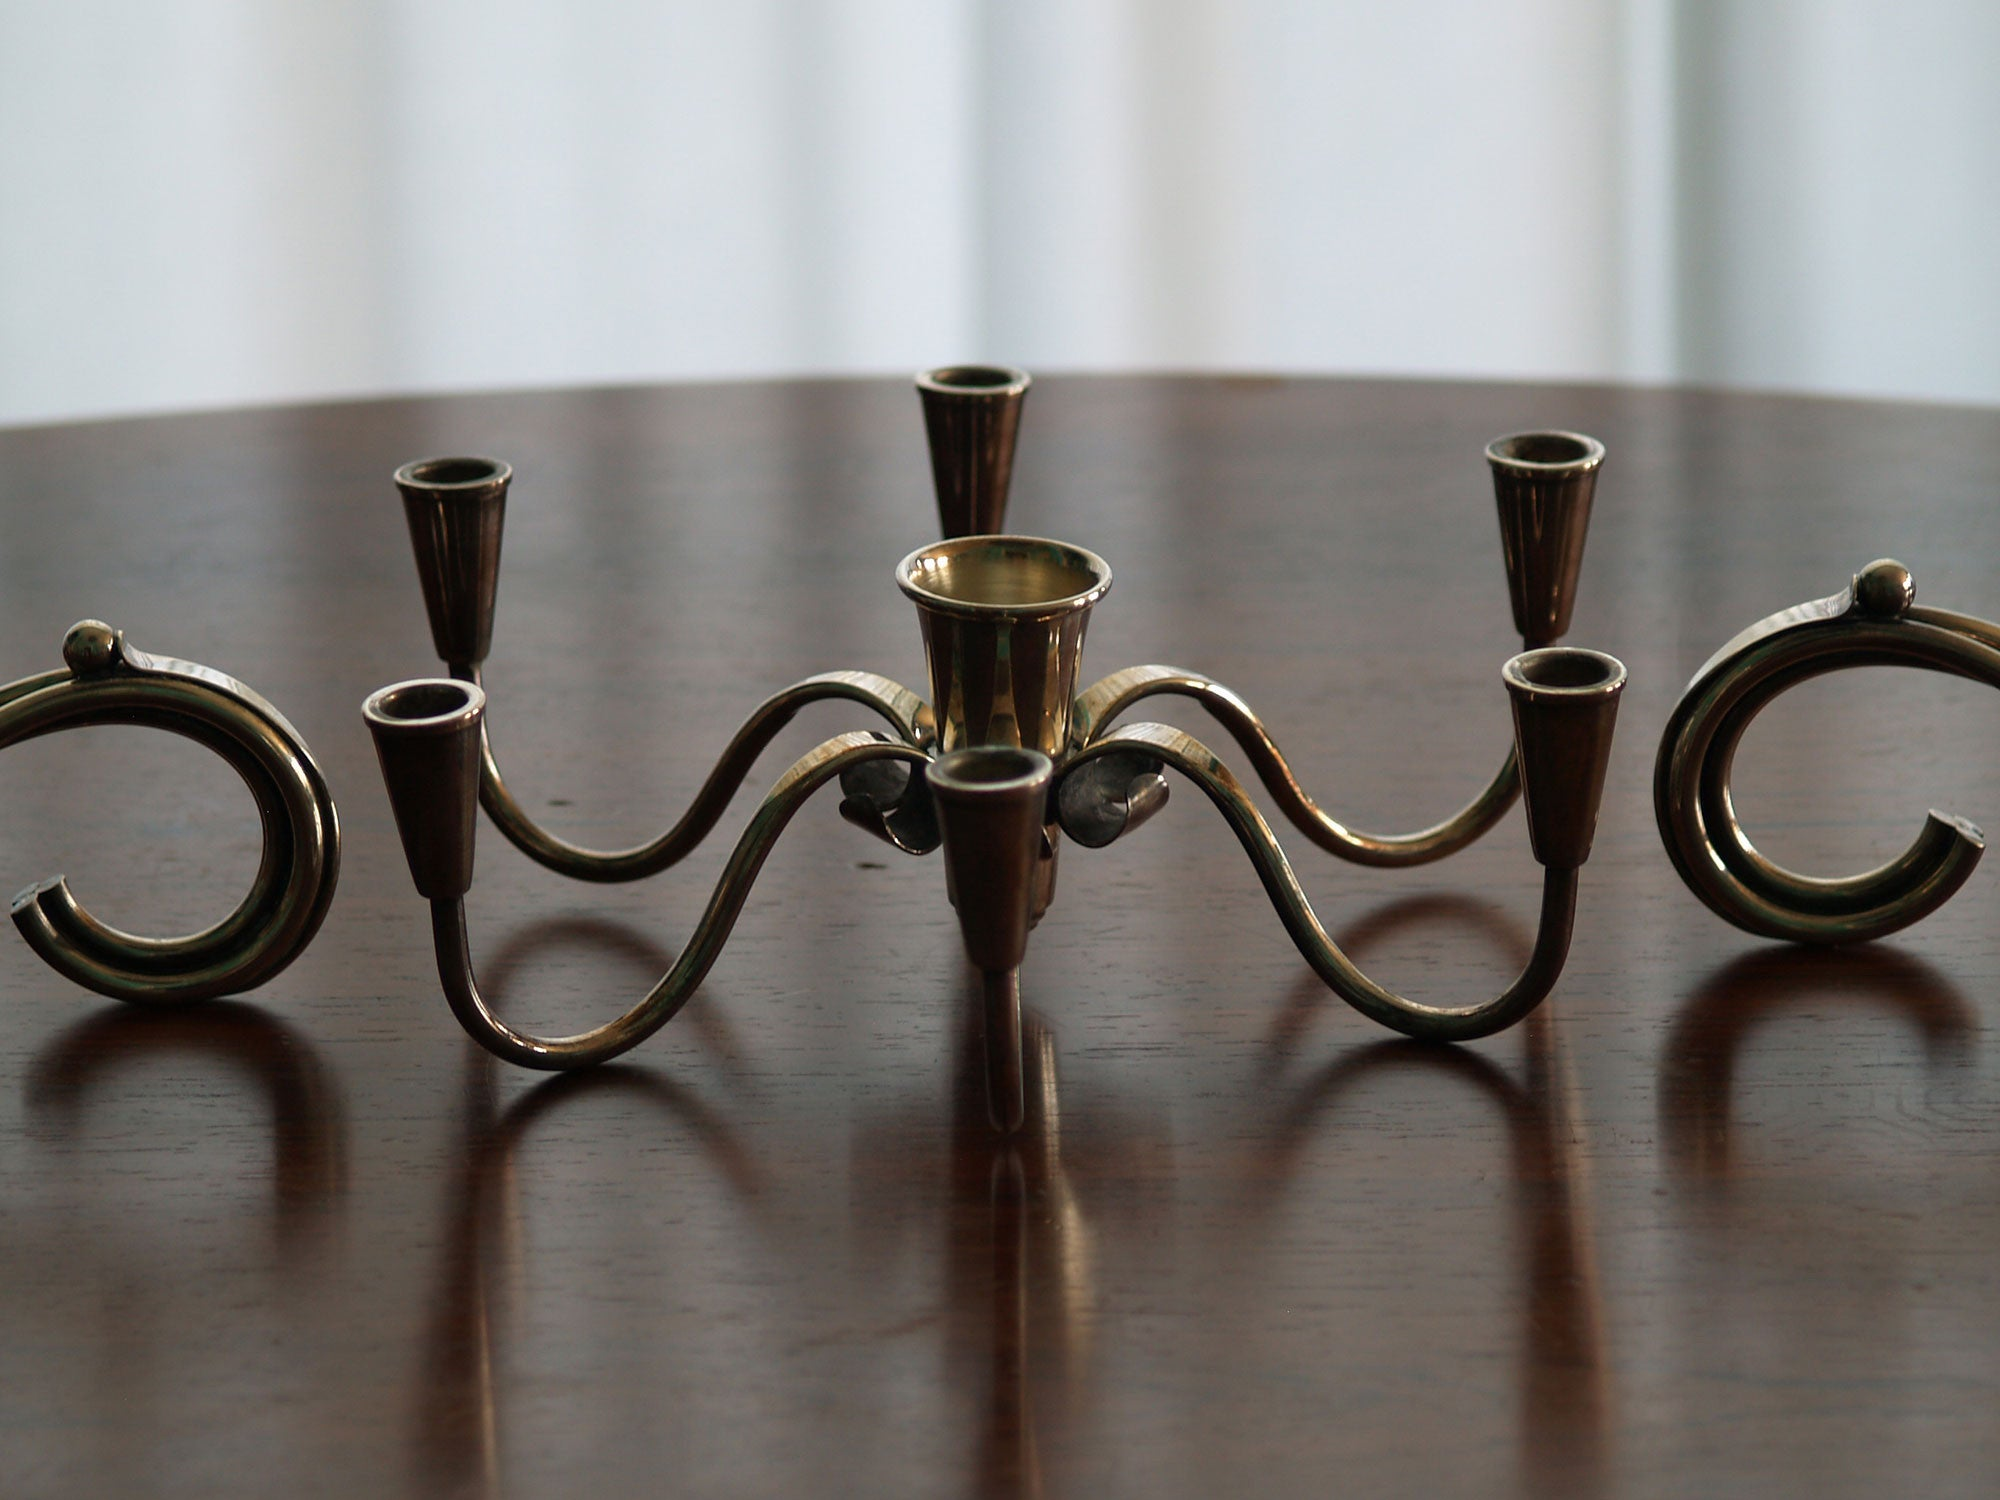 Surtout / Centre de table de Carl F. Christiansen, Danemark (vers 1945)..Table centerpiece by Carl F. Christiansen, Denmark (circa 1945)